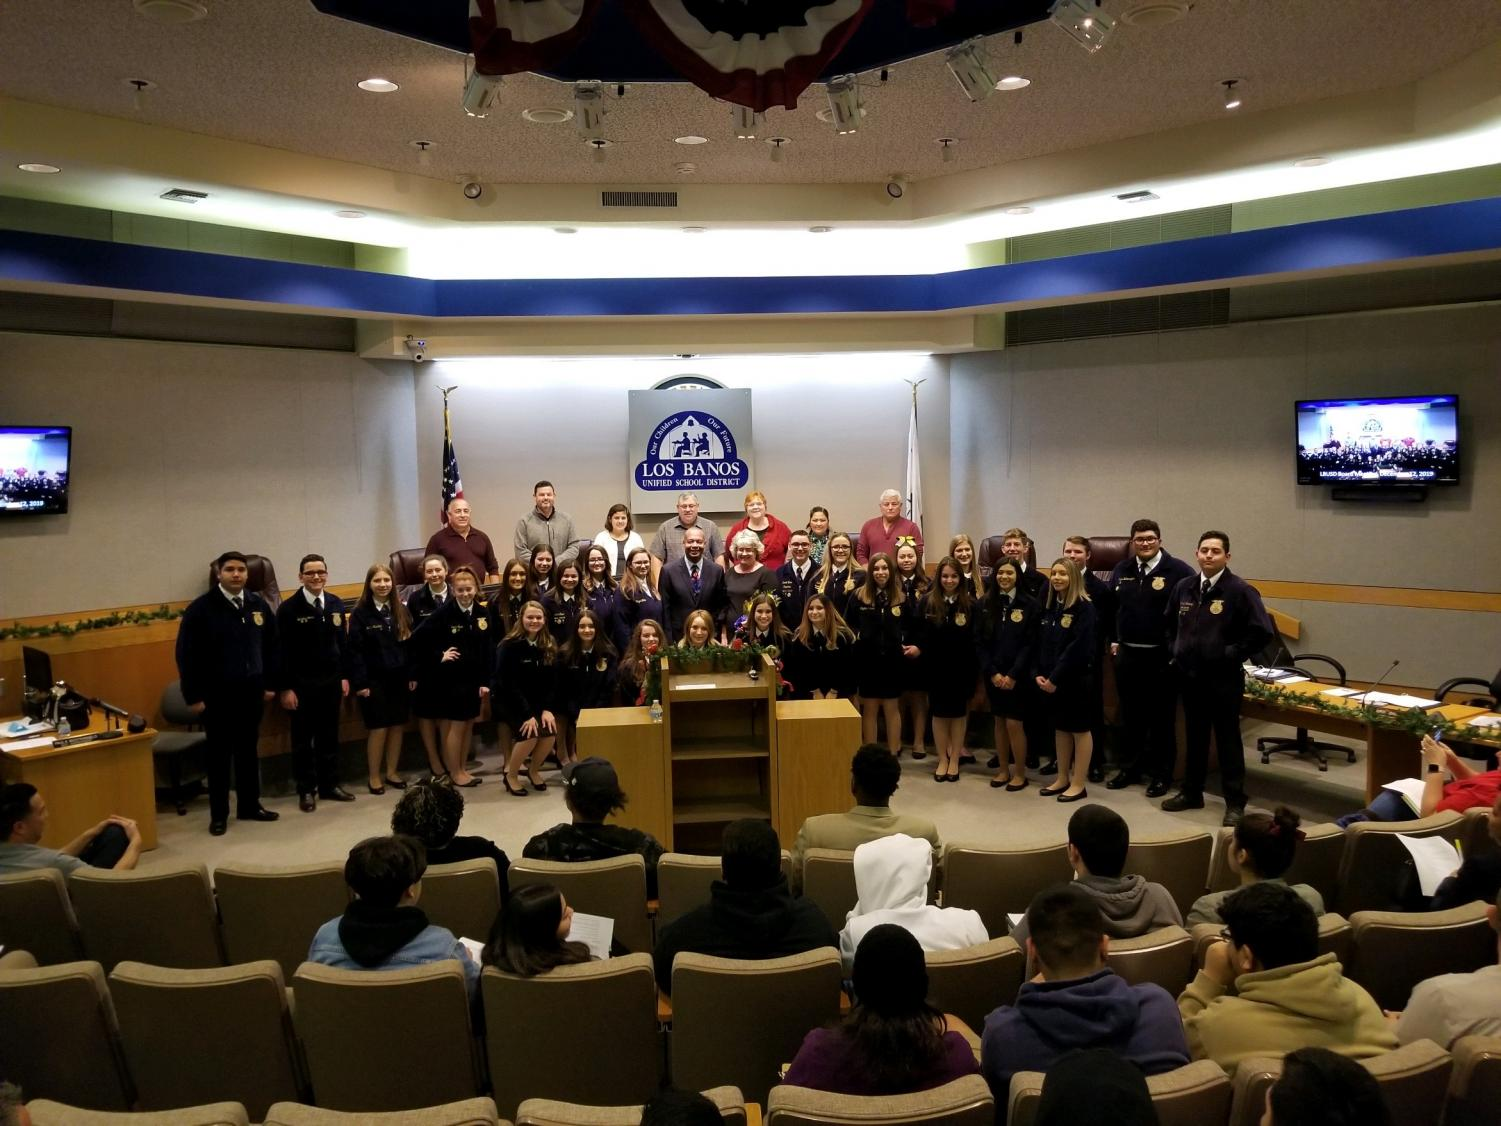 FFA+students+attended+the+award+ceremony+at+the+city+council+meeting+to+honor+Mrs.+Falaschi.